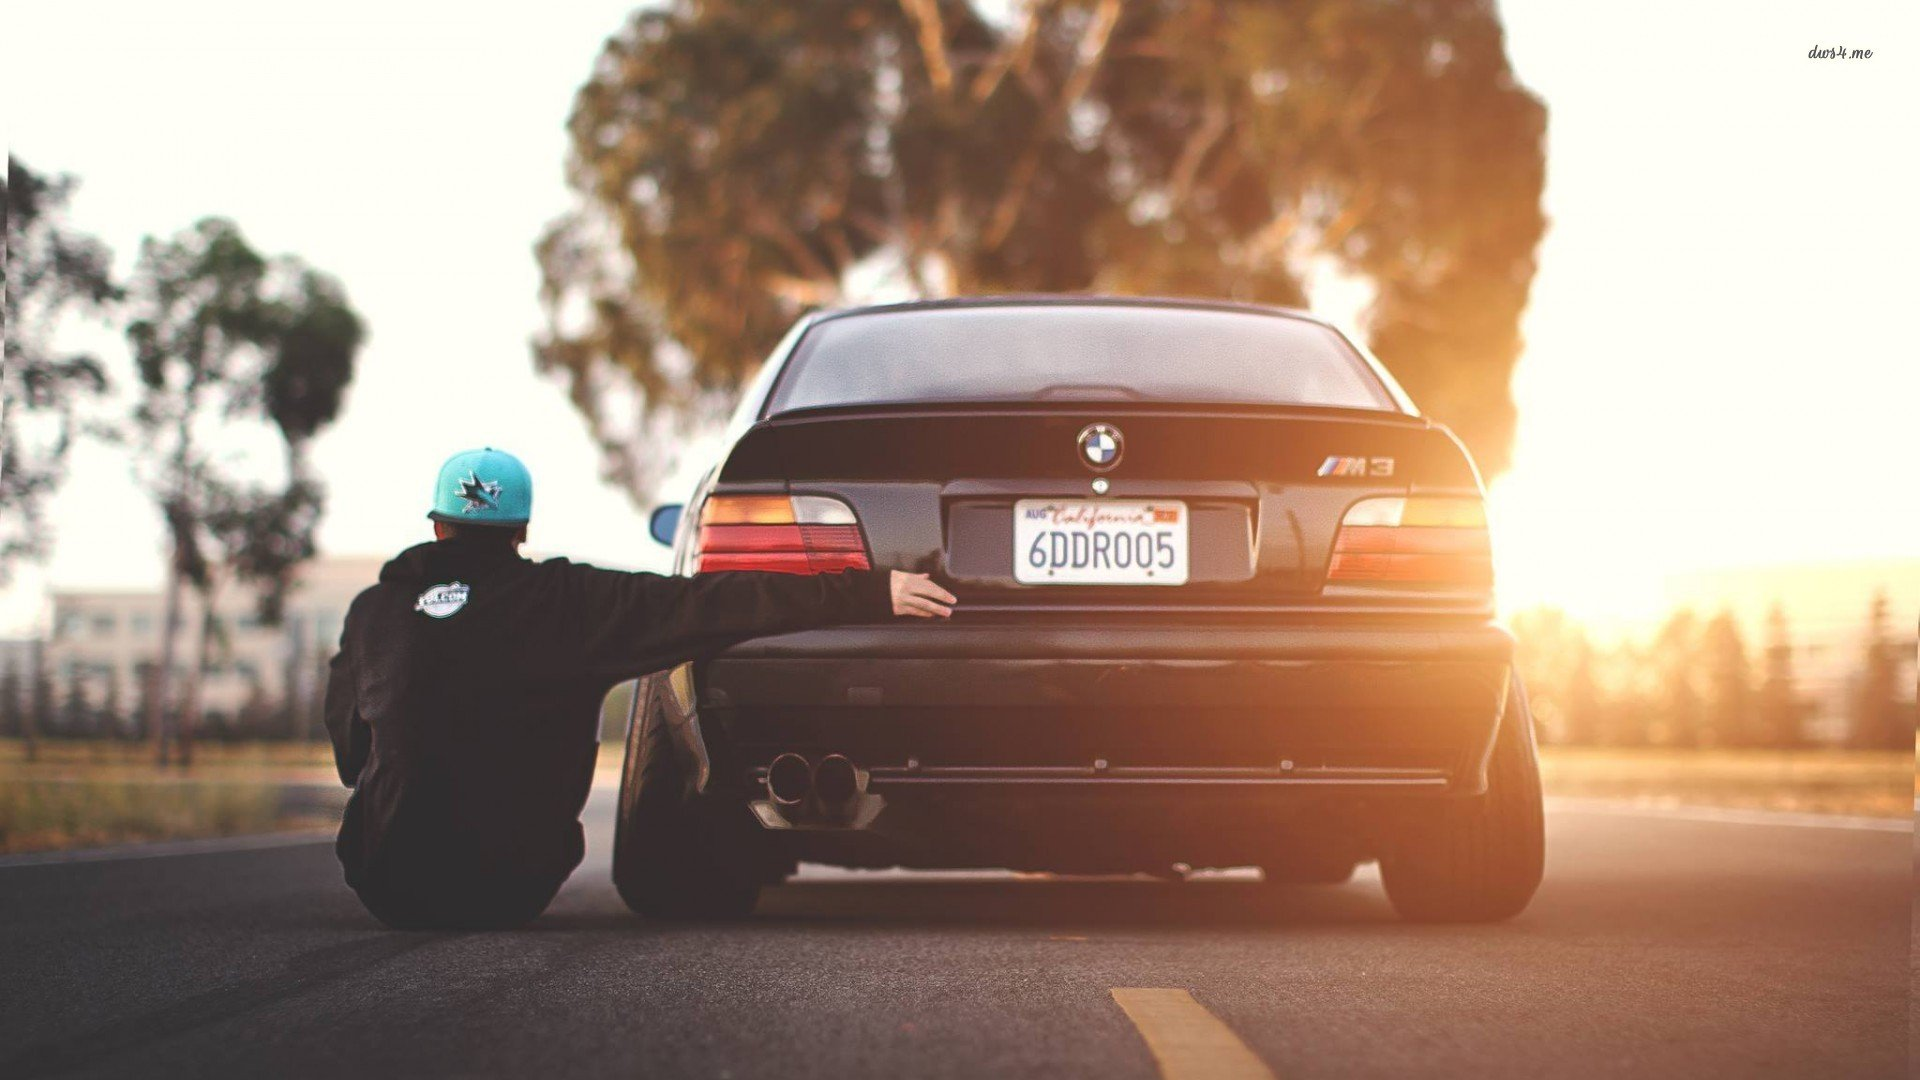 Bmw e wallpaper Android Apps on Google Play 1920x1080